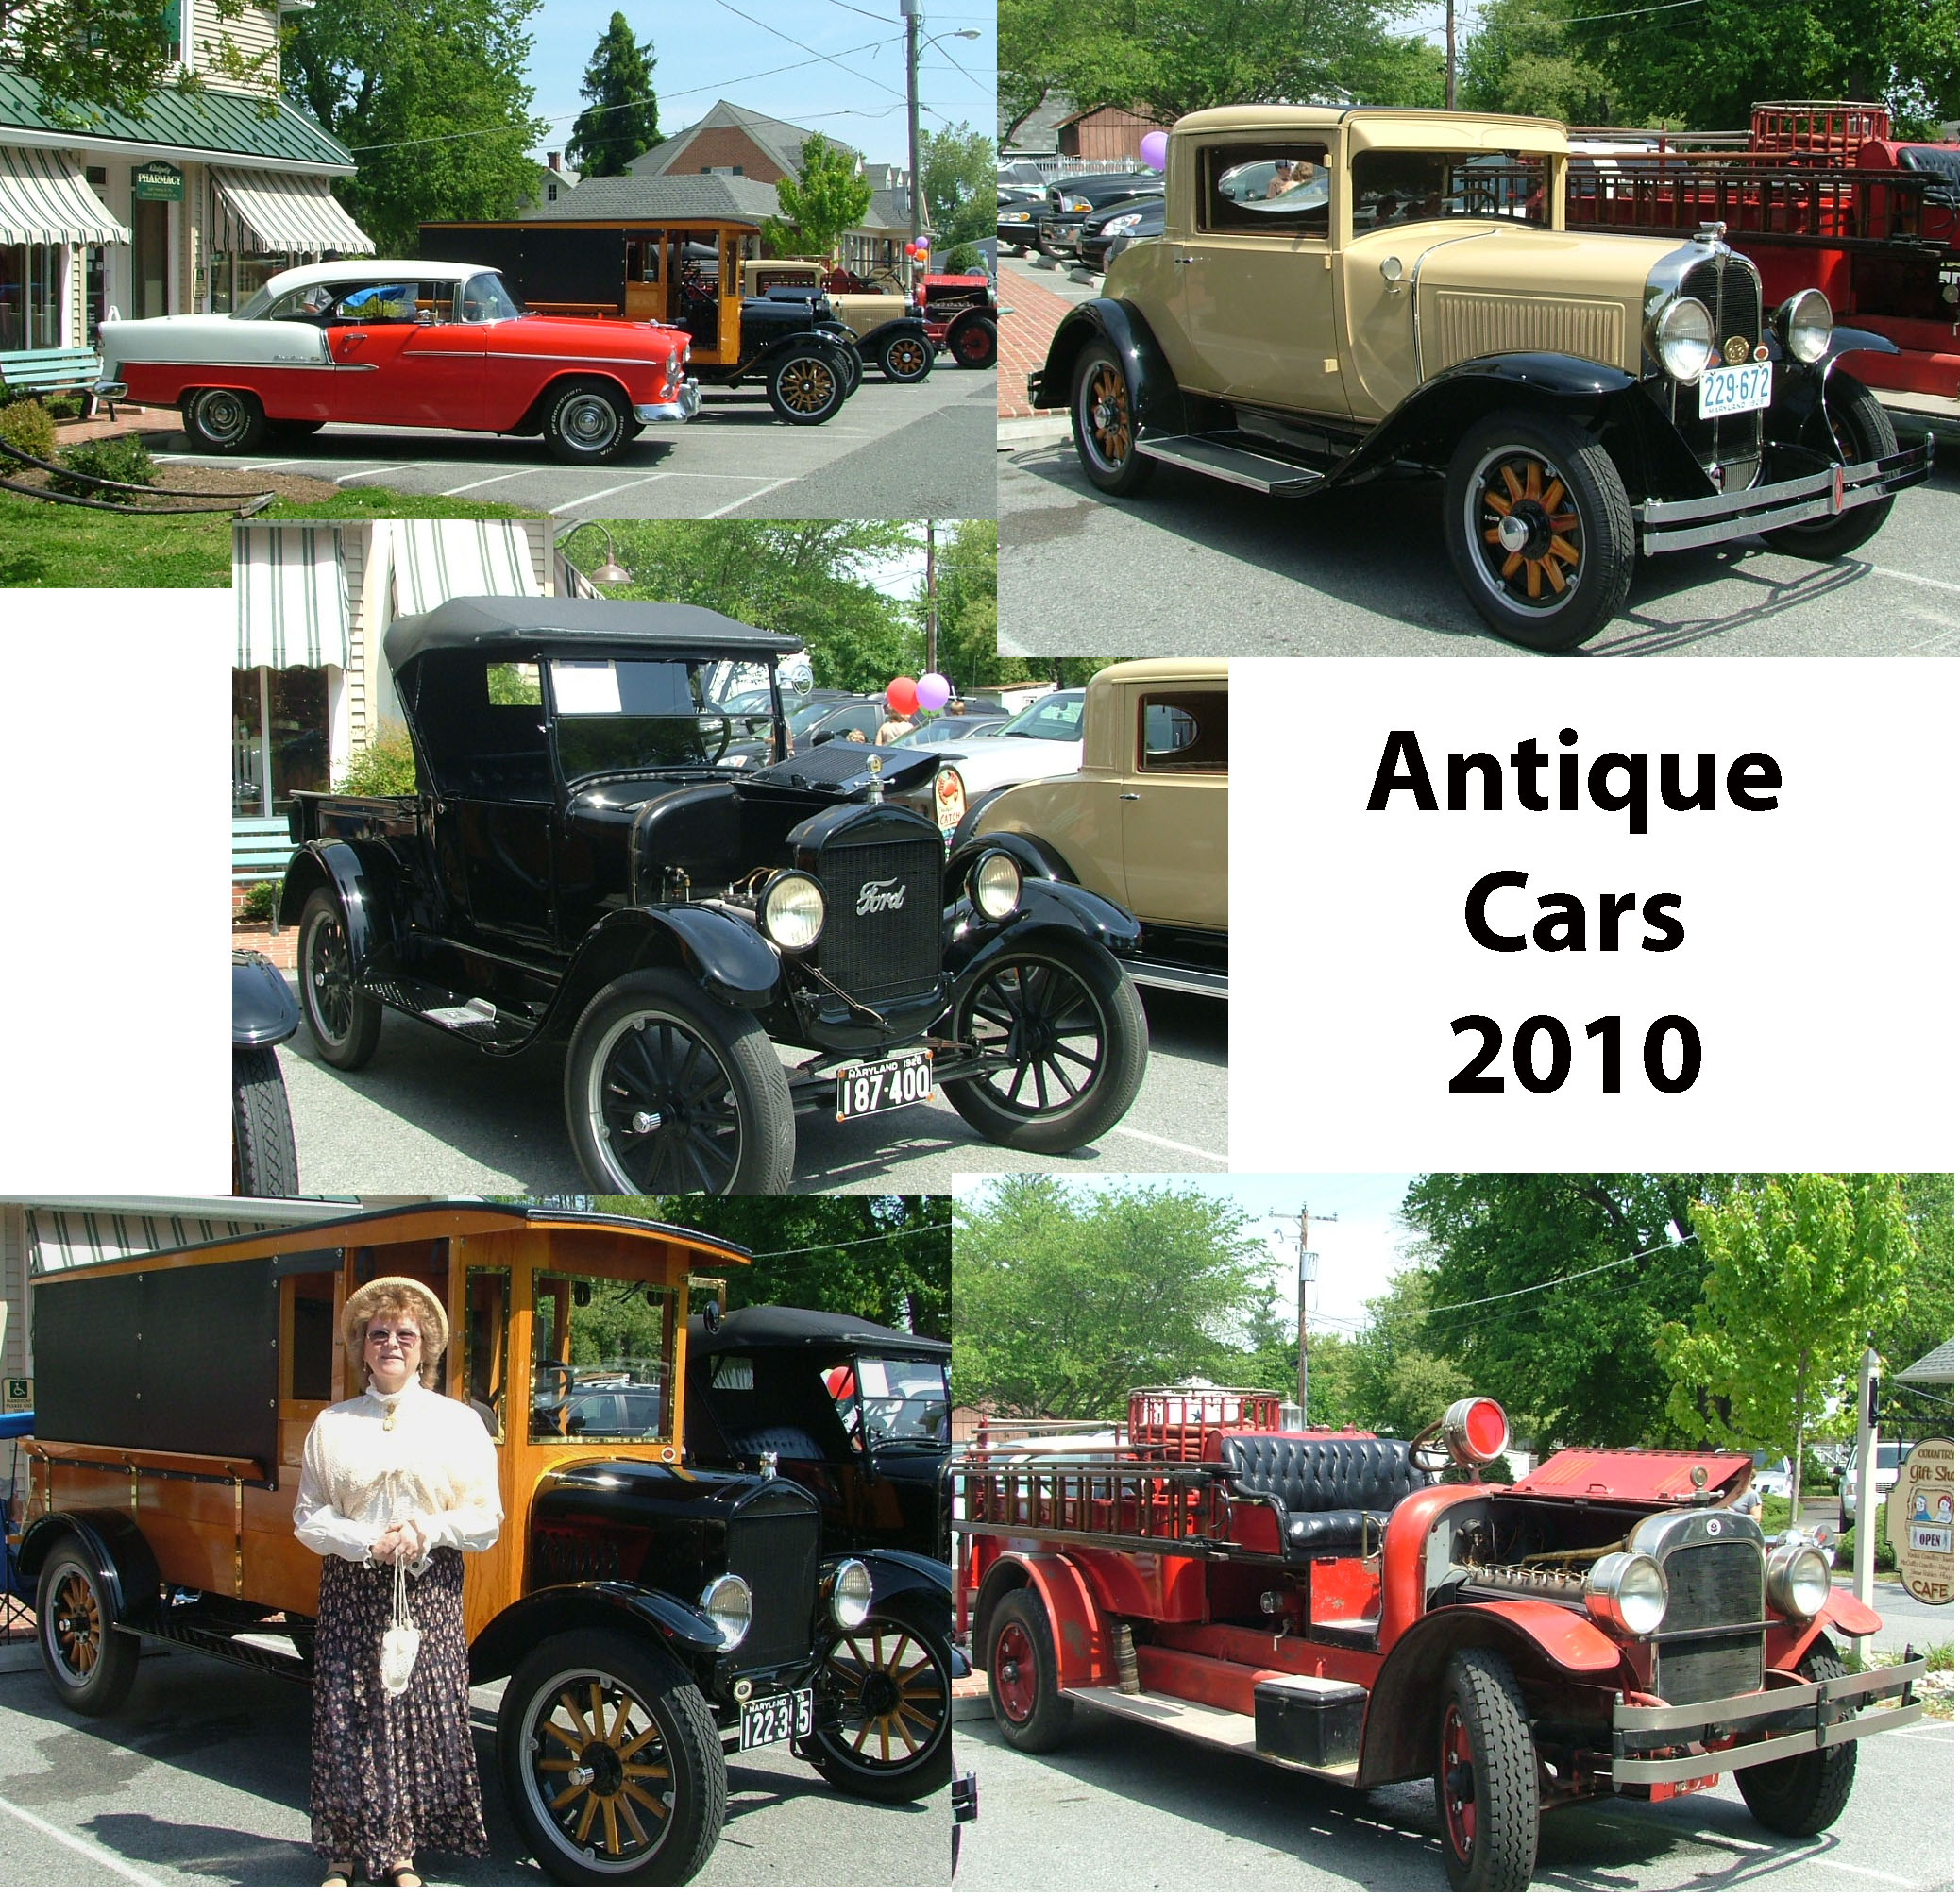 AntiqueCars2010